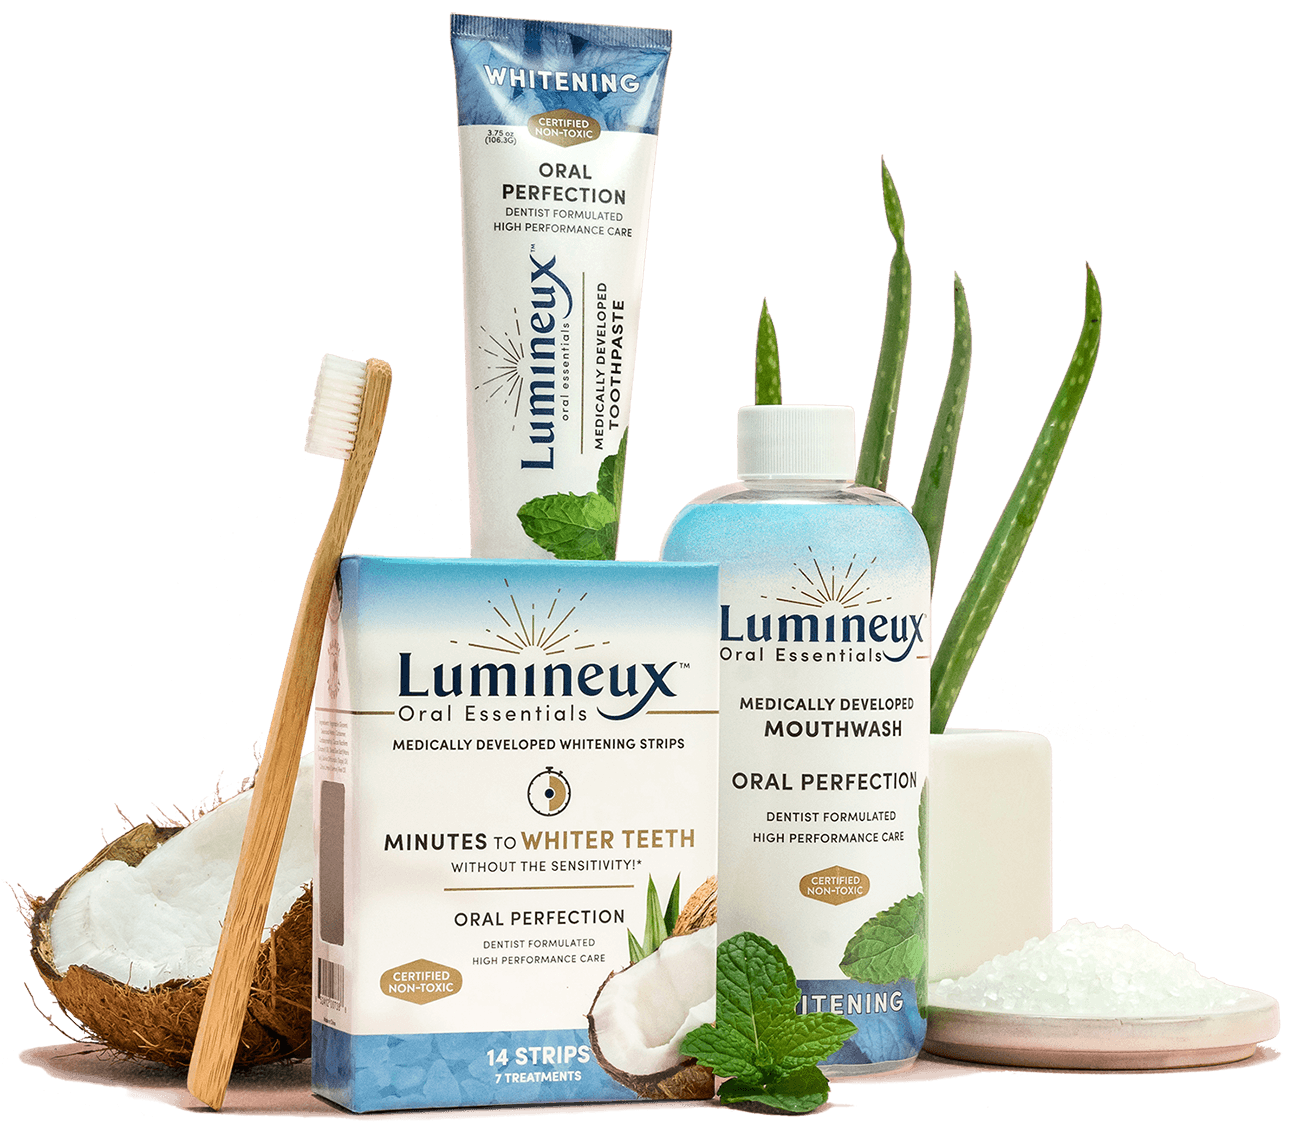 Lumineux Oral Essentials Naturally Confident Lumineux Oral